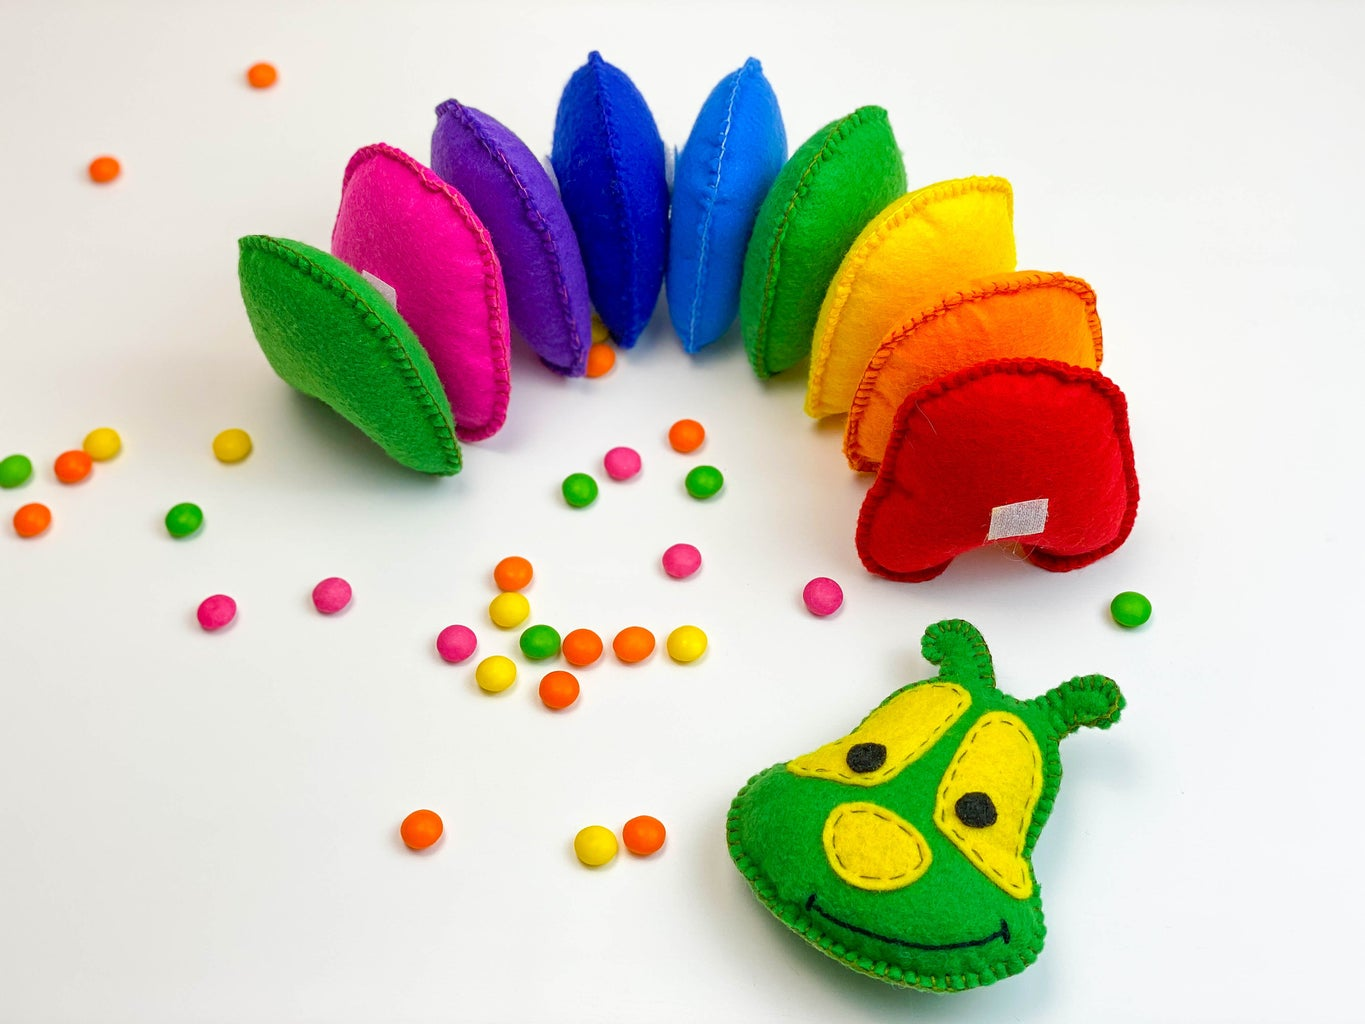 Caterpillar Toy - Colors Early Education